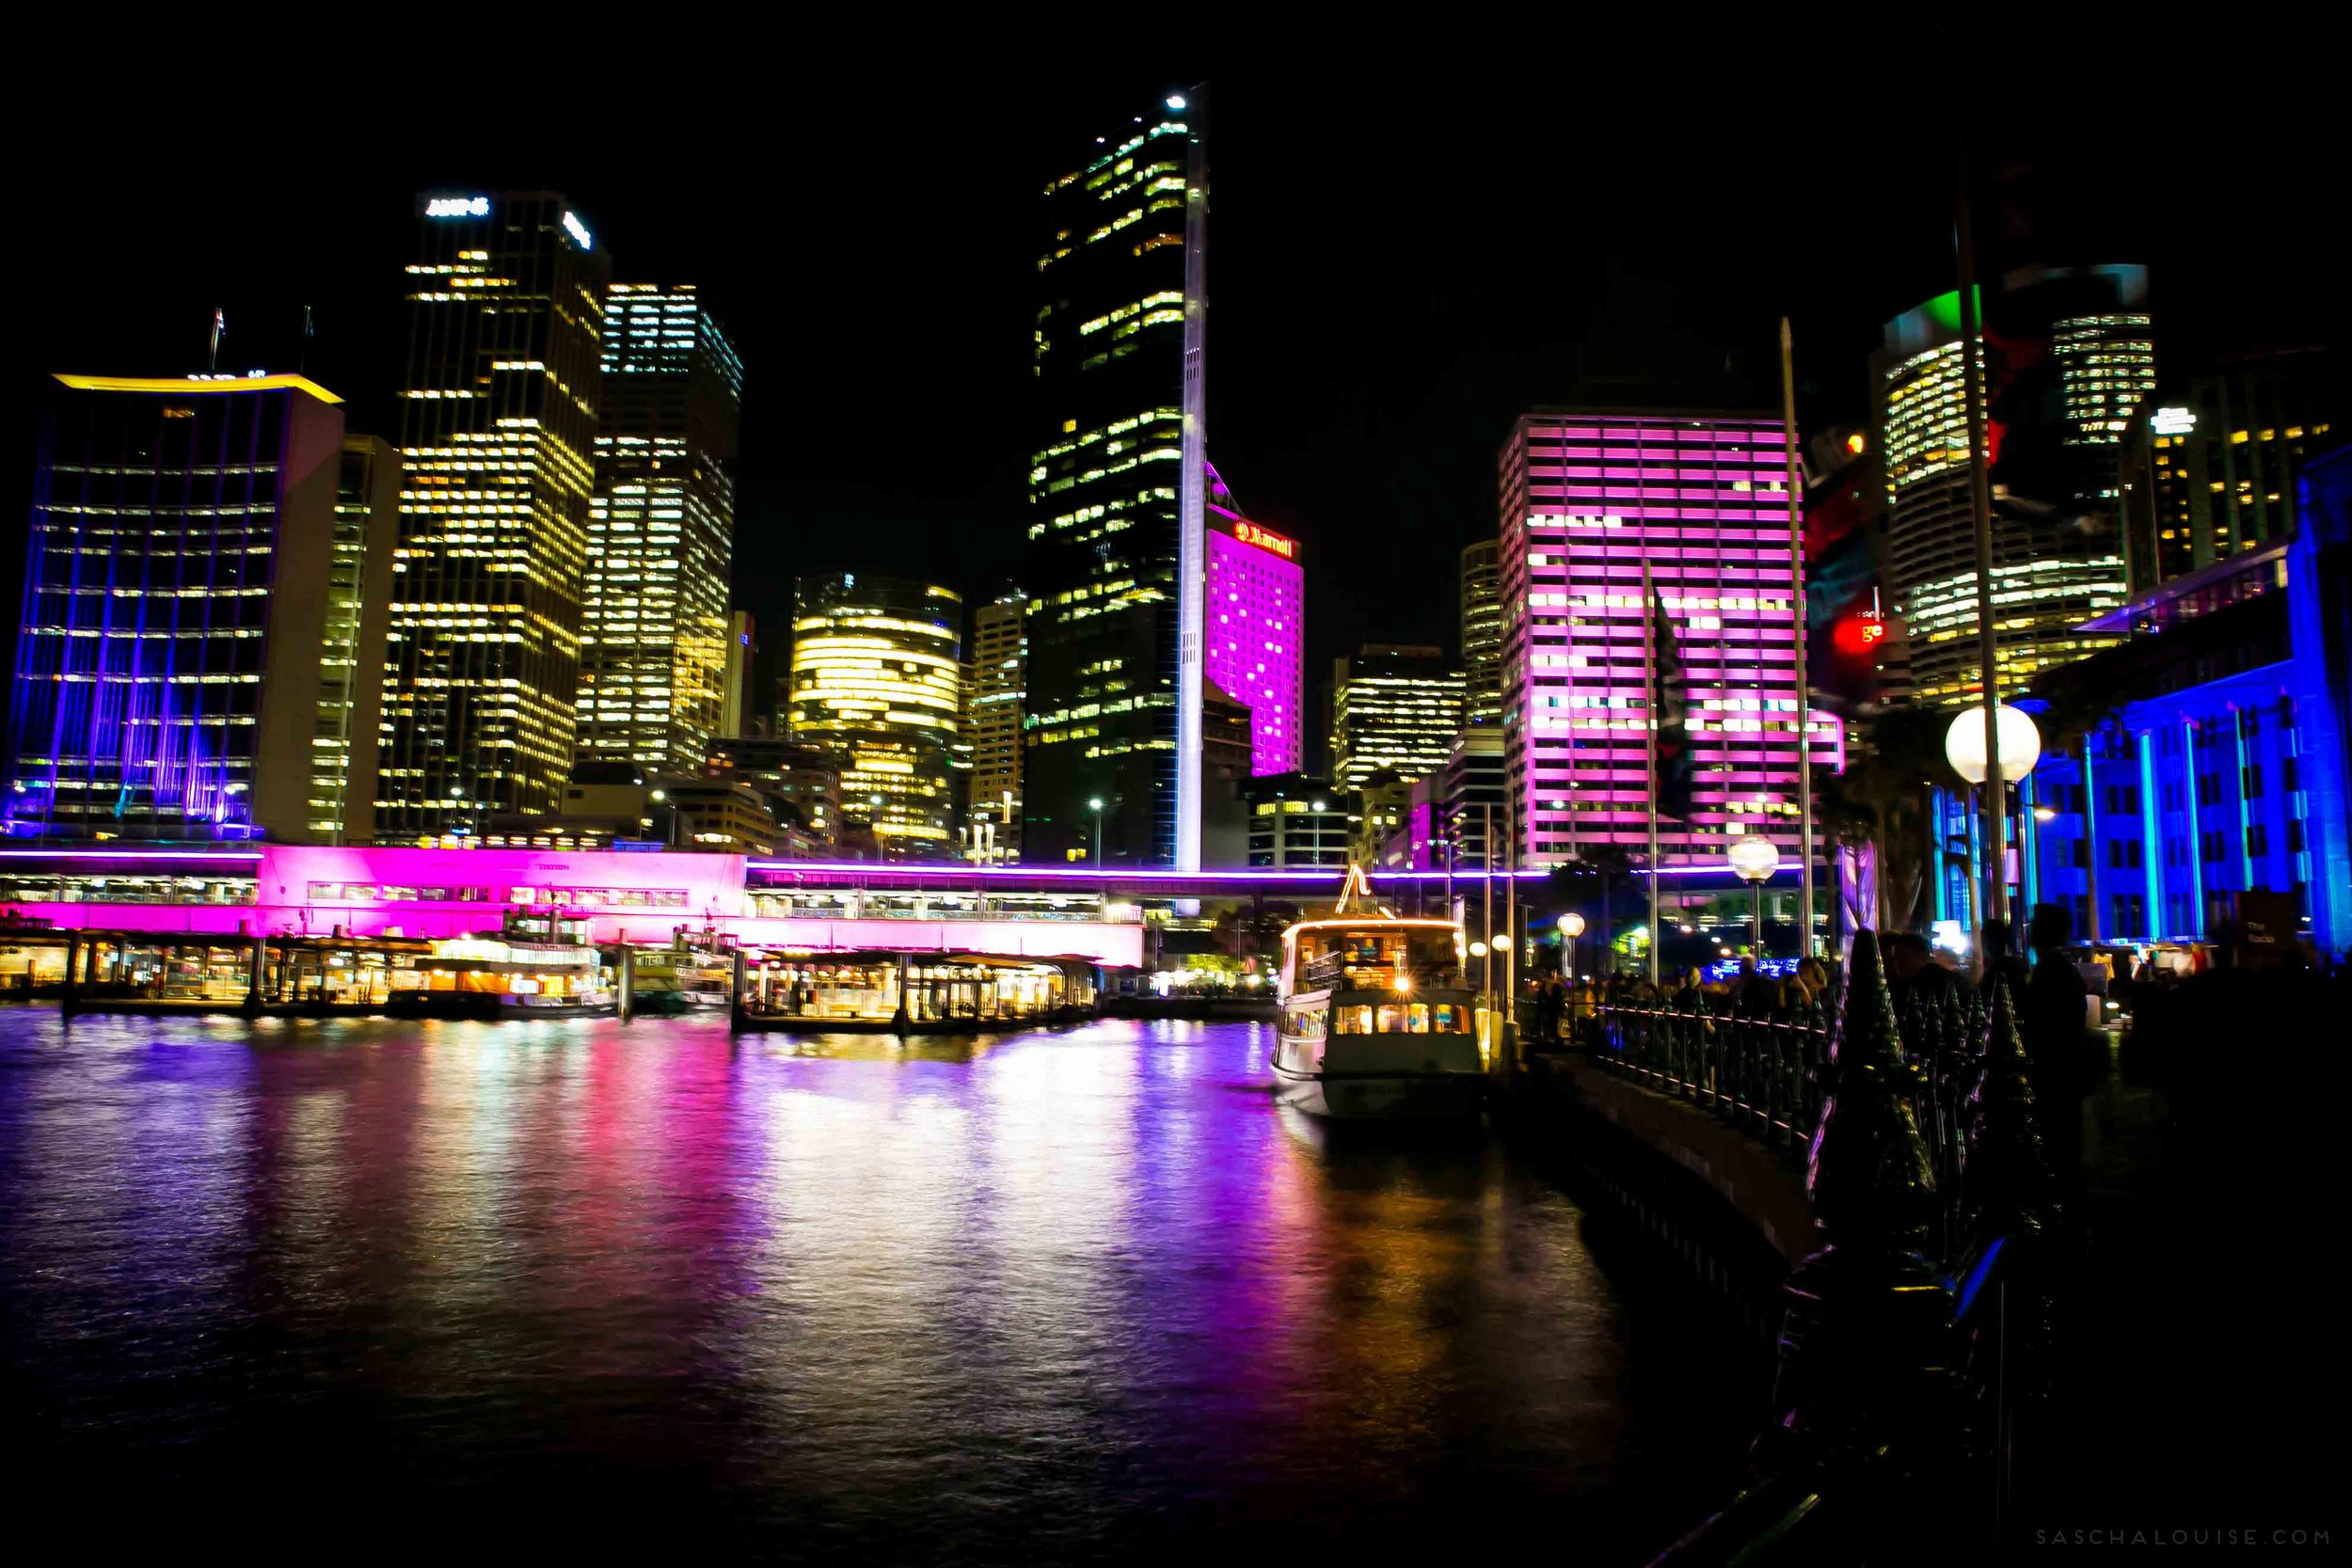 Vivid Sydney - Museum of Contemporary Art